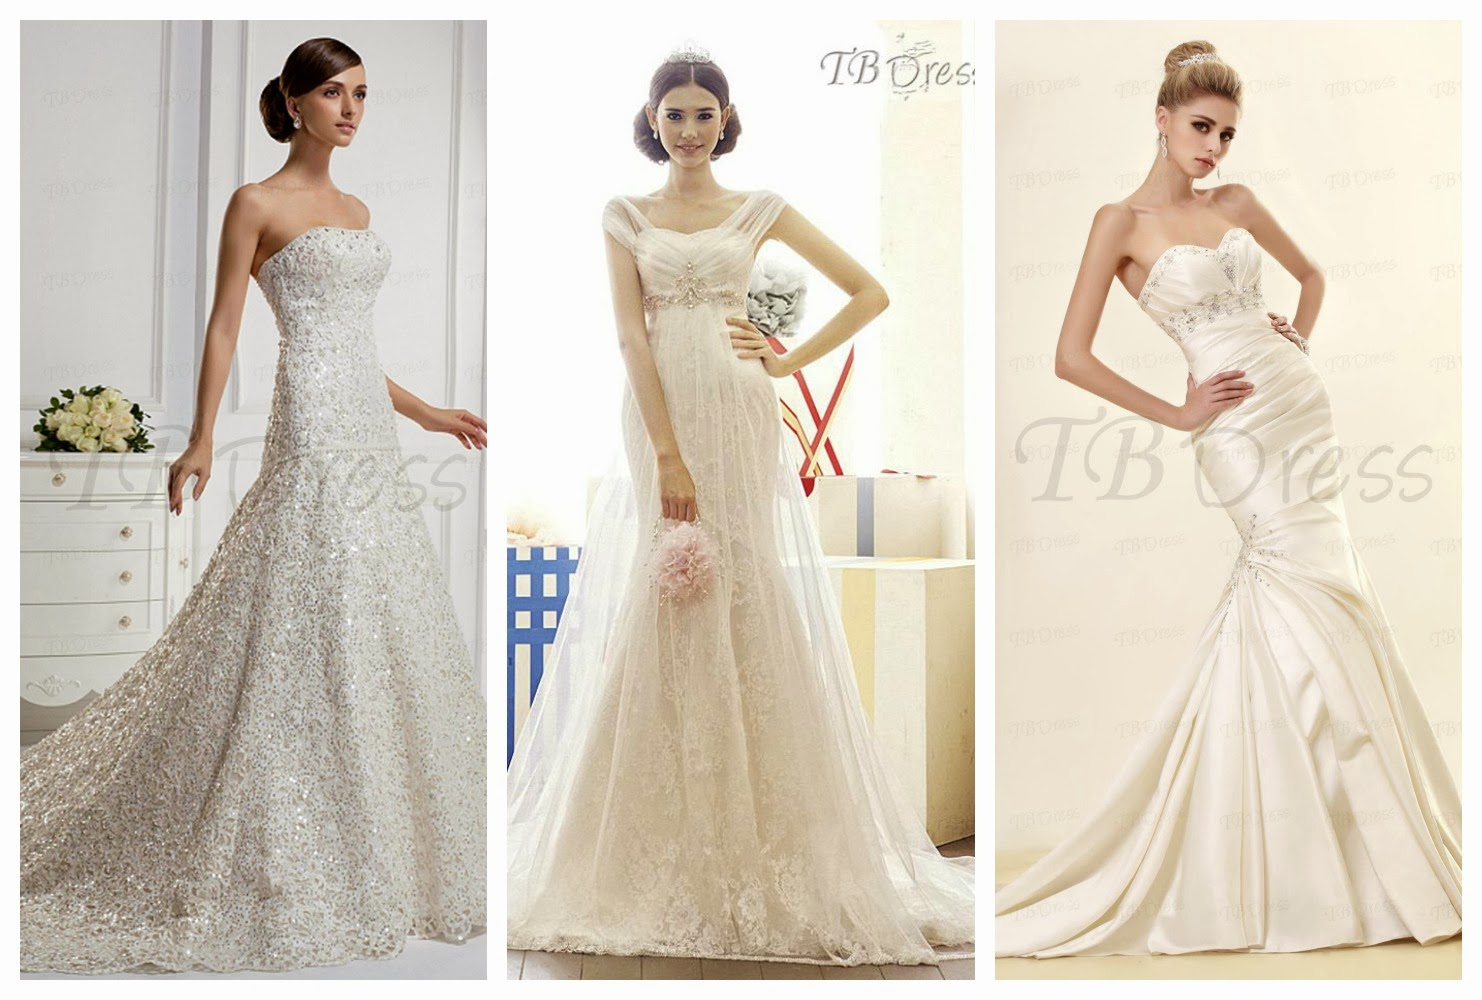 a739f8ae7b3 Introduction of Tb dress - Beauty and the Mist